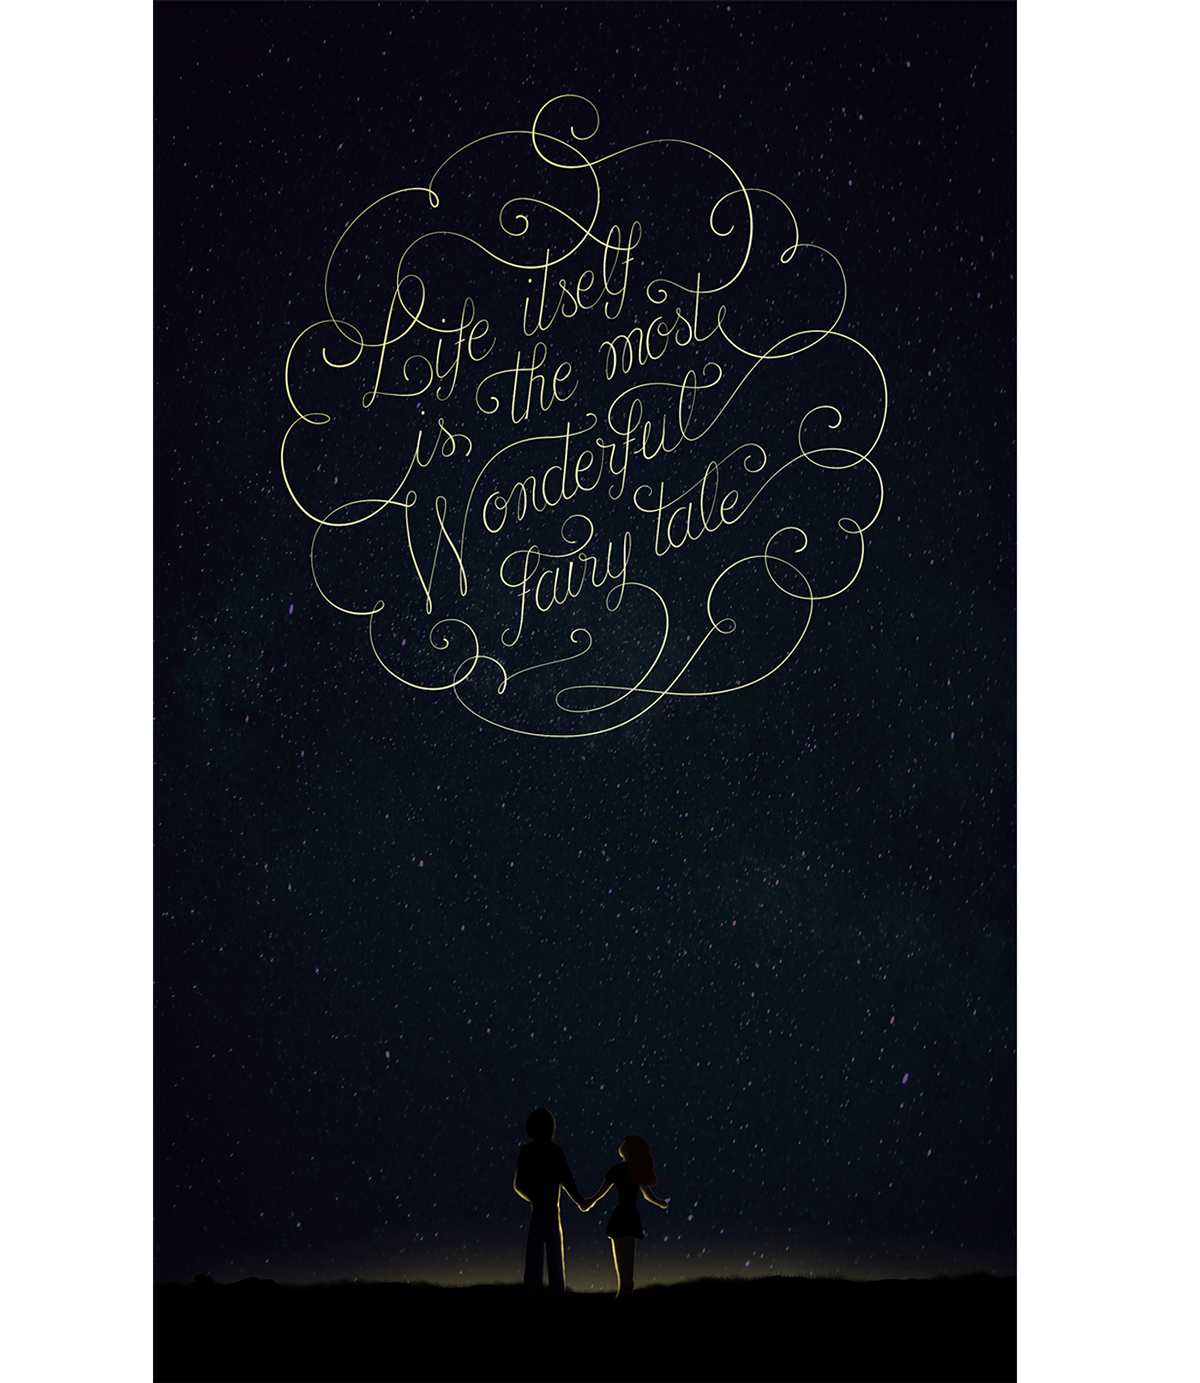 fairy tale poster lettering mountain Space  dream graphic art andersen HAND LETTERING papaya